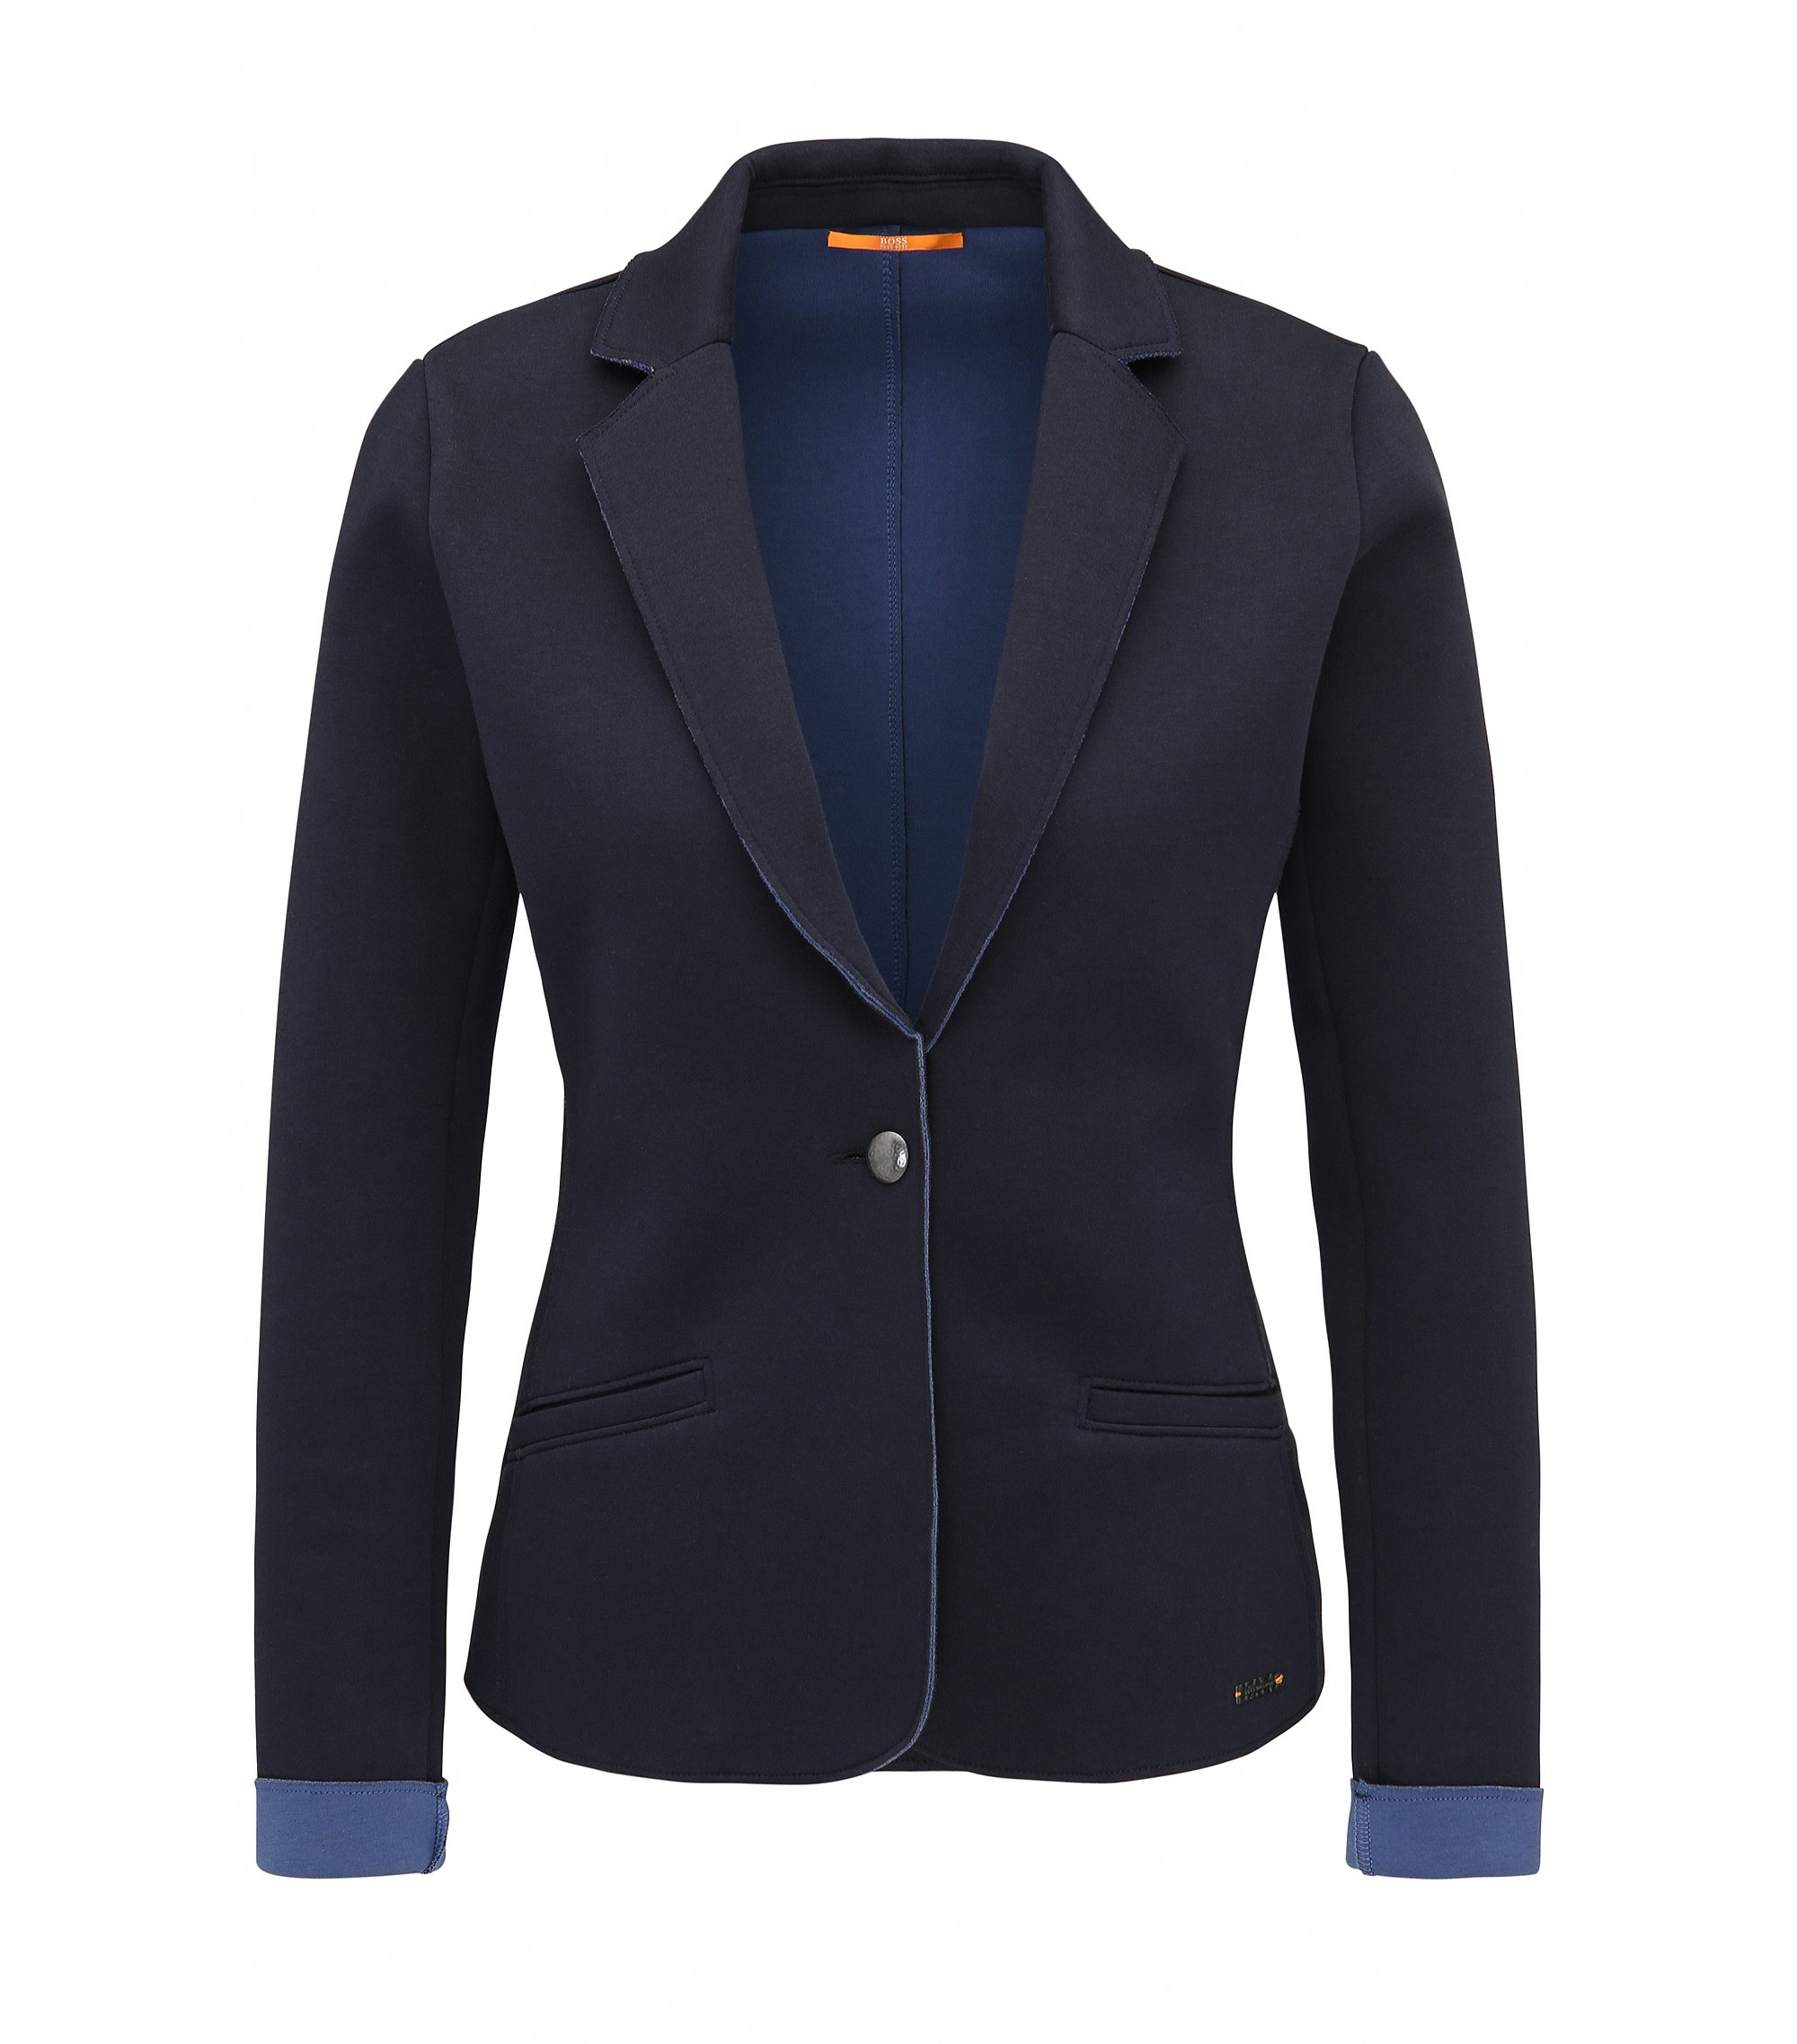 Veste Slim Fit en jersey simple thermocollé, Bleu foncé